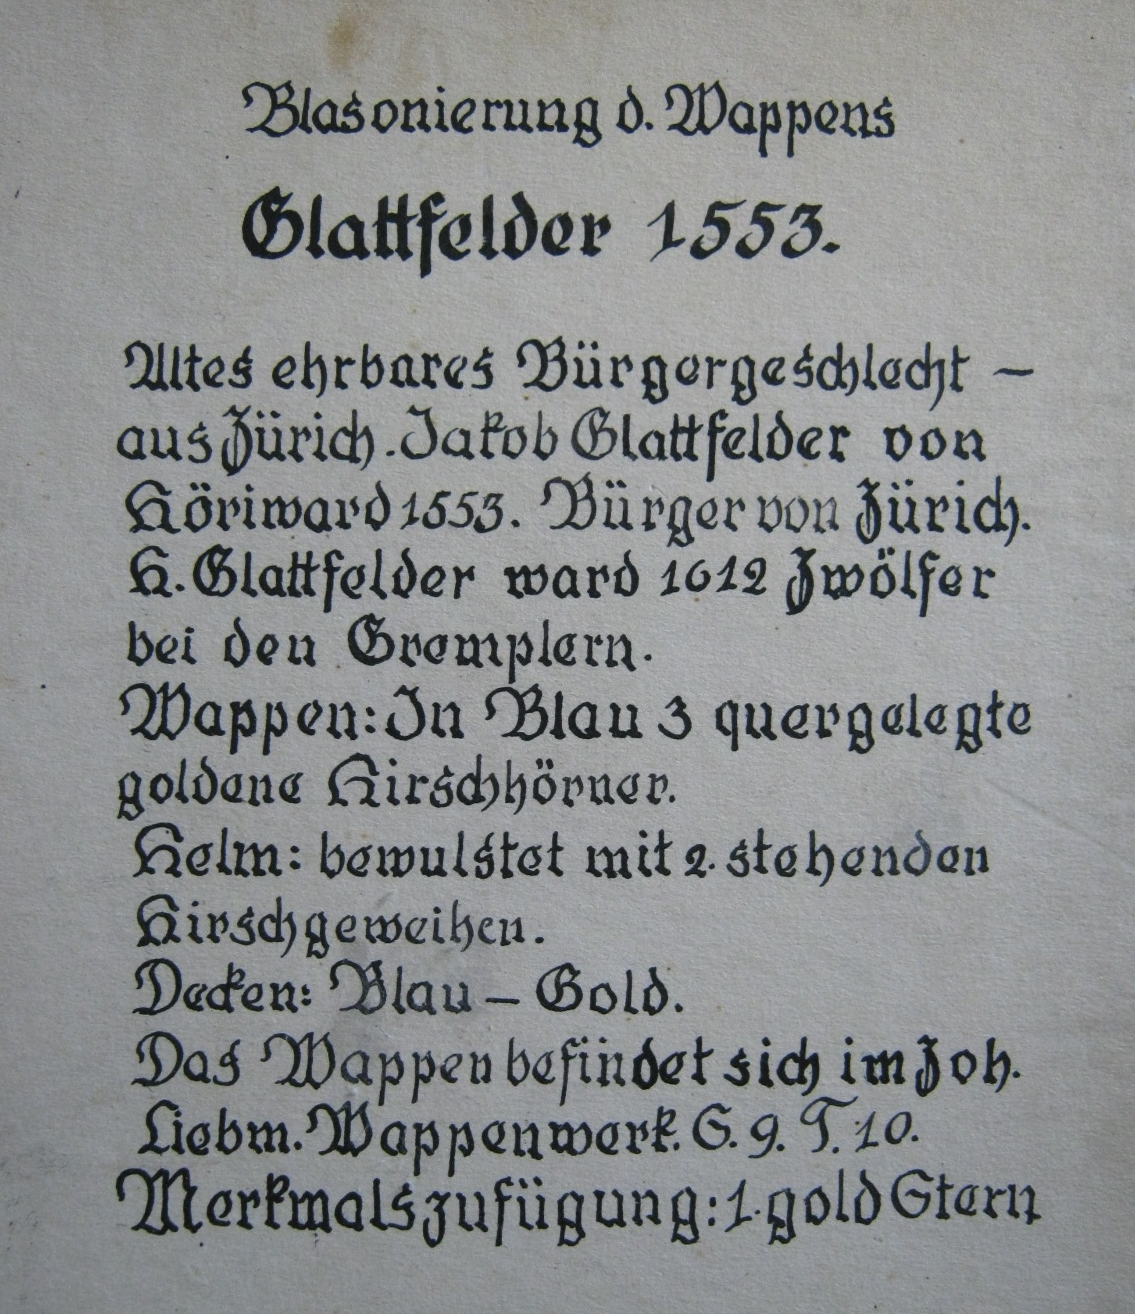 Glattfelder Crest 1553 Description